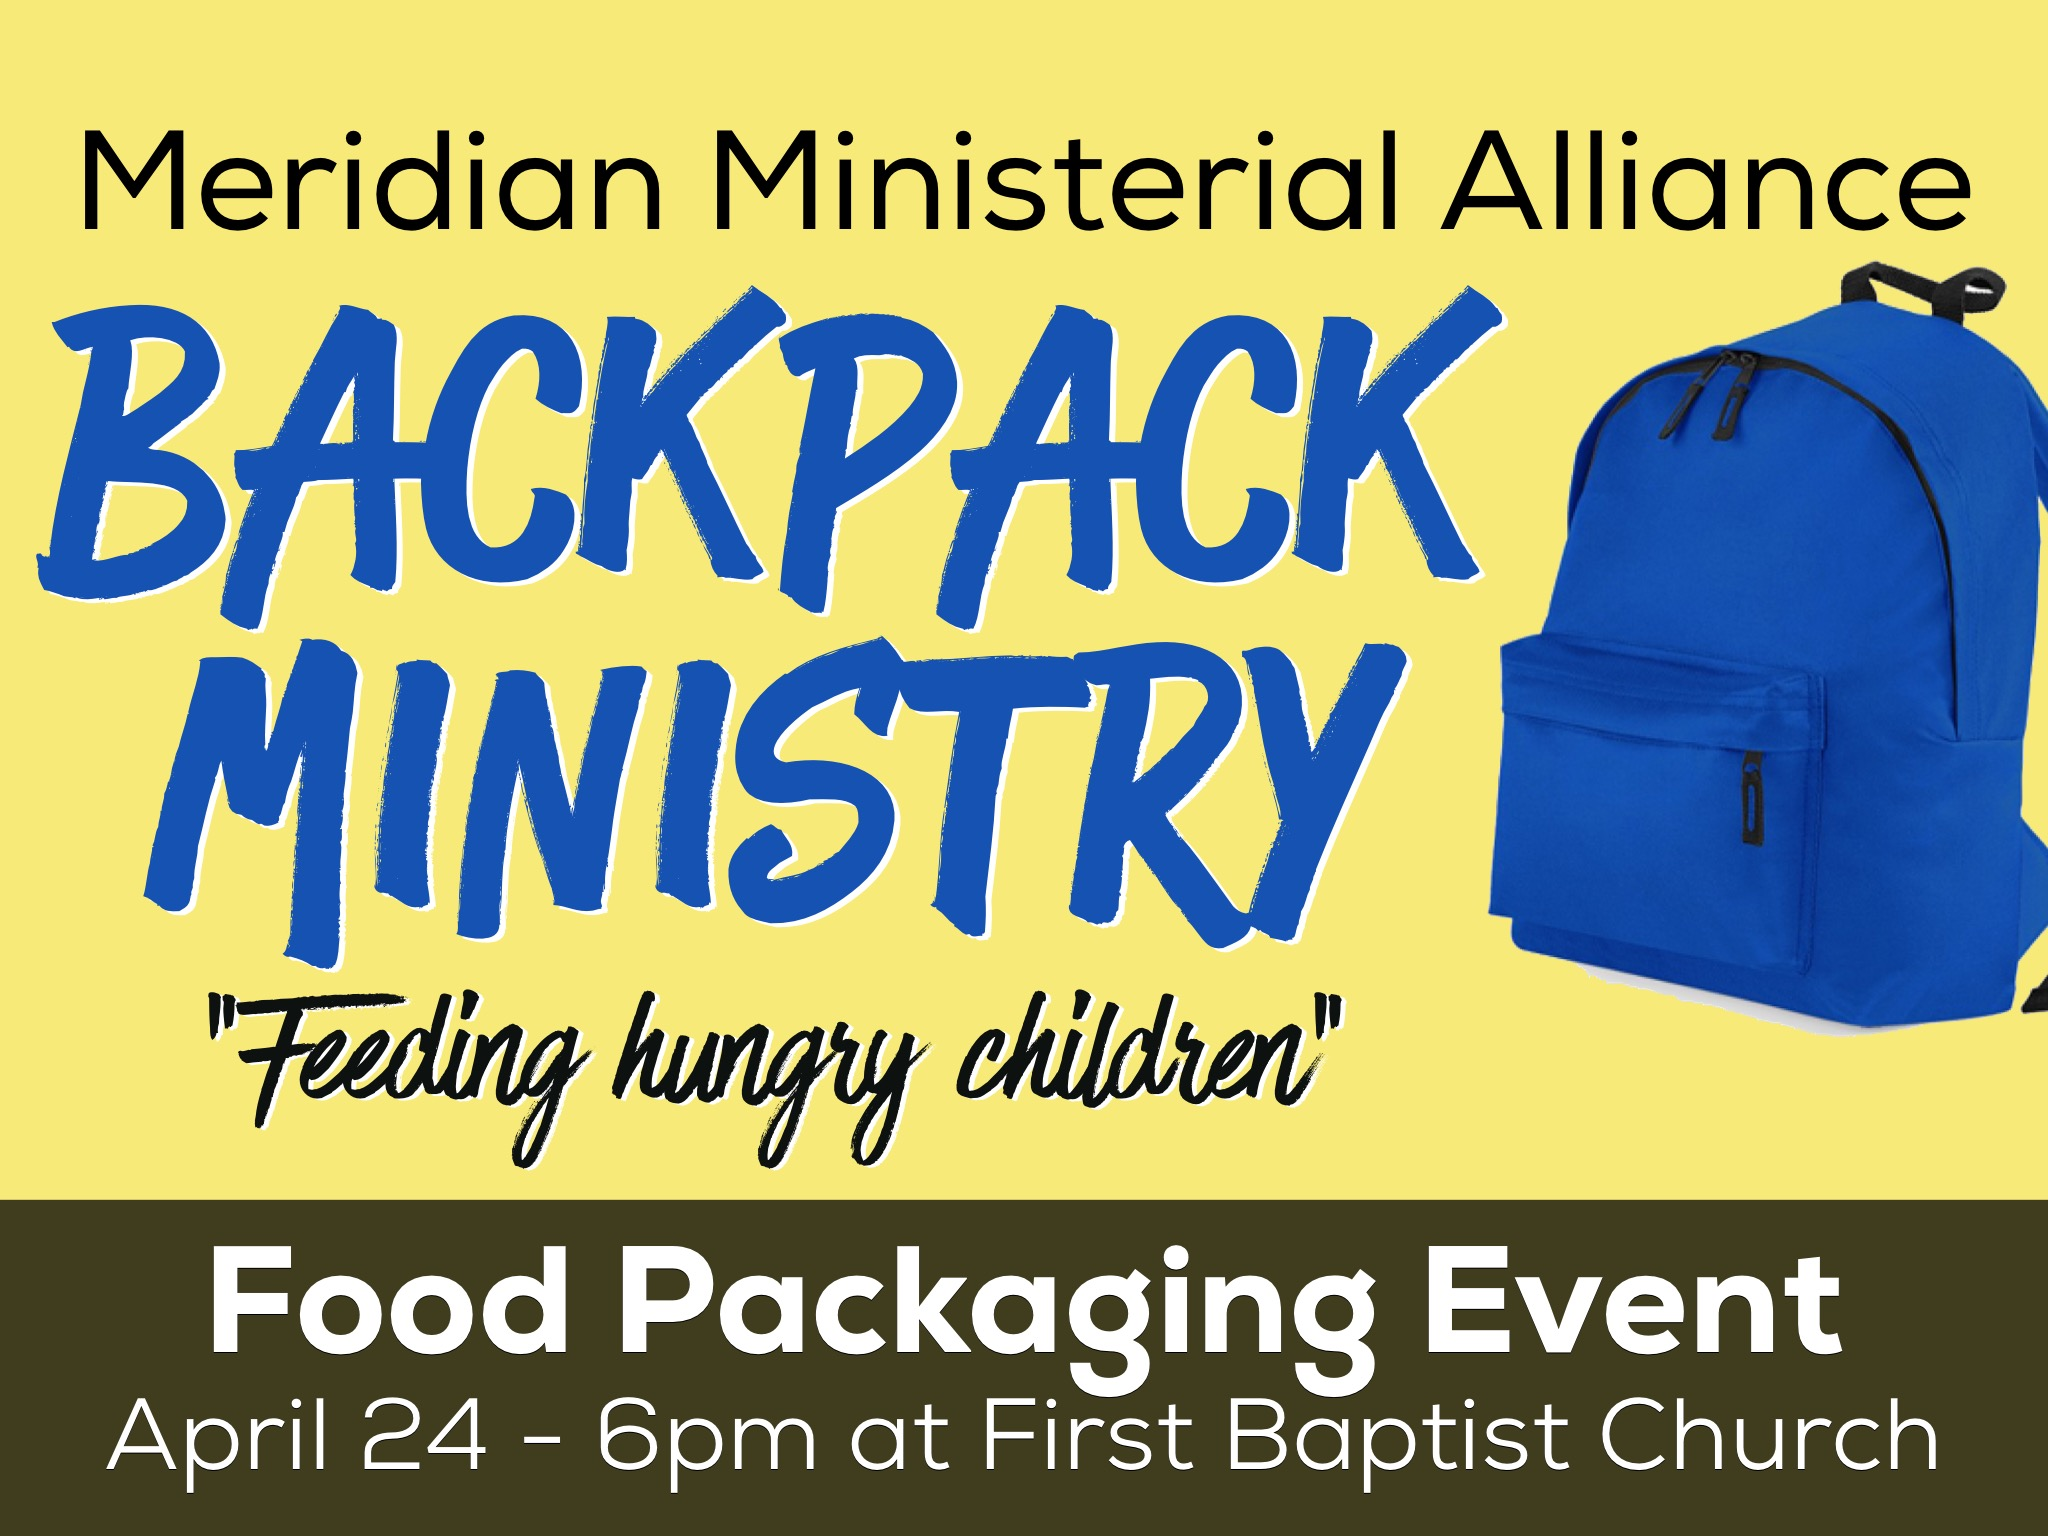 Meridian Ministerial Alliance Backpack Ministry @ First Baptist Church | Meridian | Texas | United States